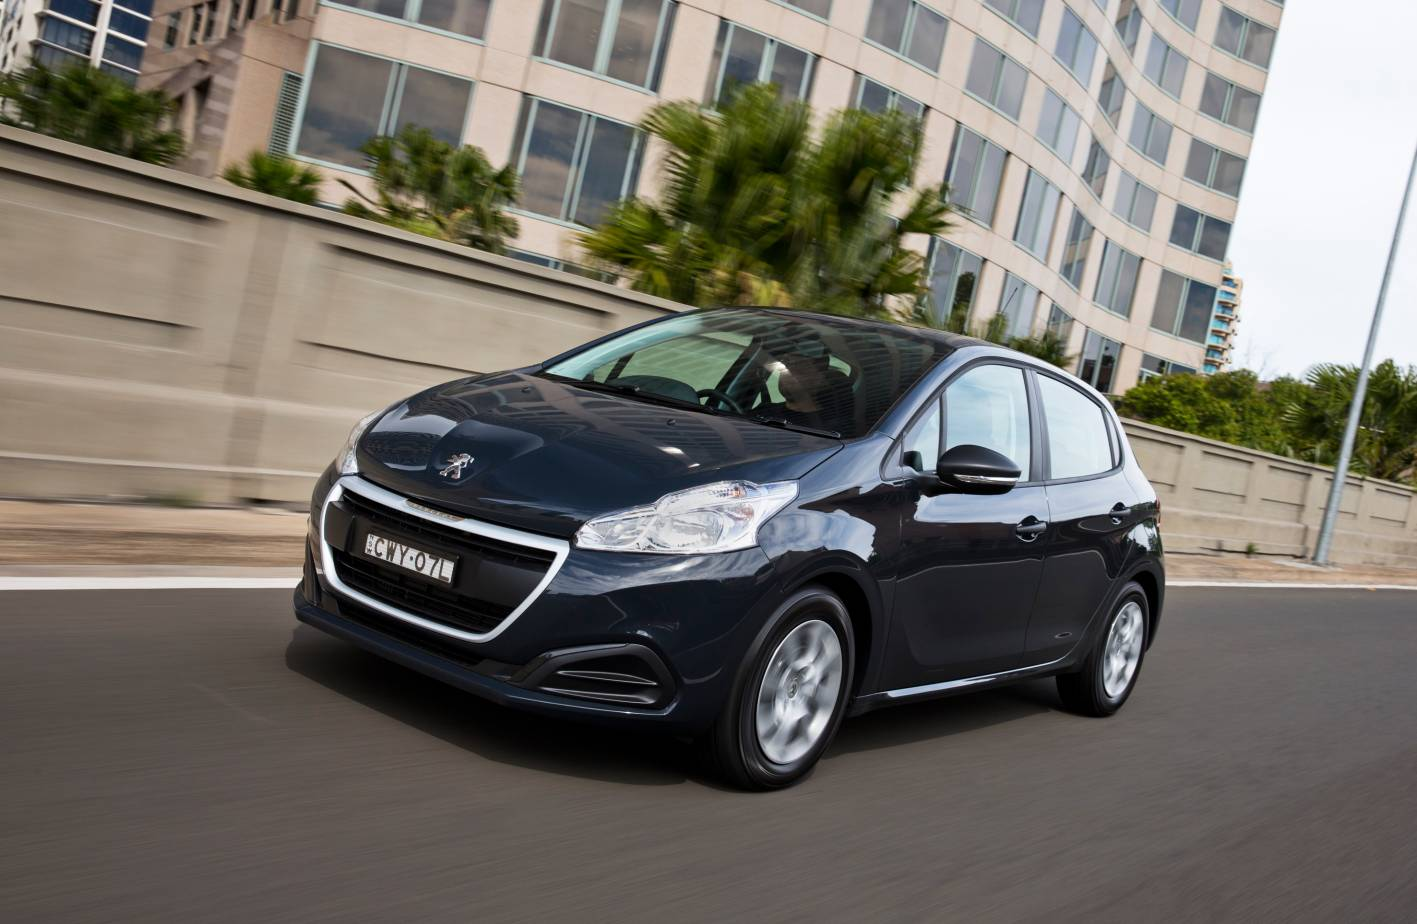 peugeot cars news 2015 peugeot 208 pricing and specification. Black Bedroom Furniture Sets. Home Design Ideas